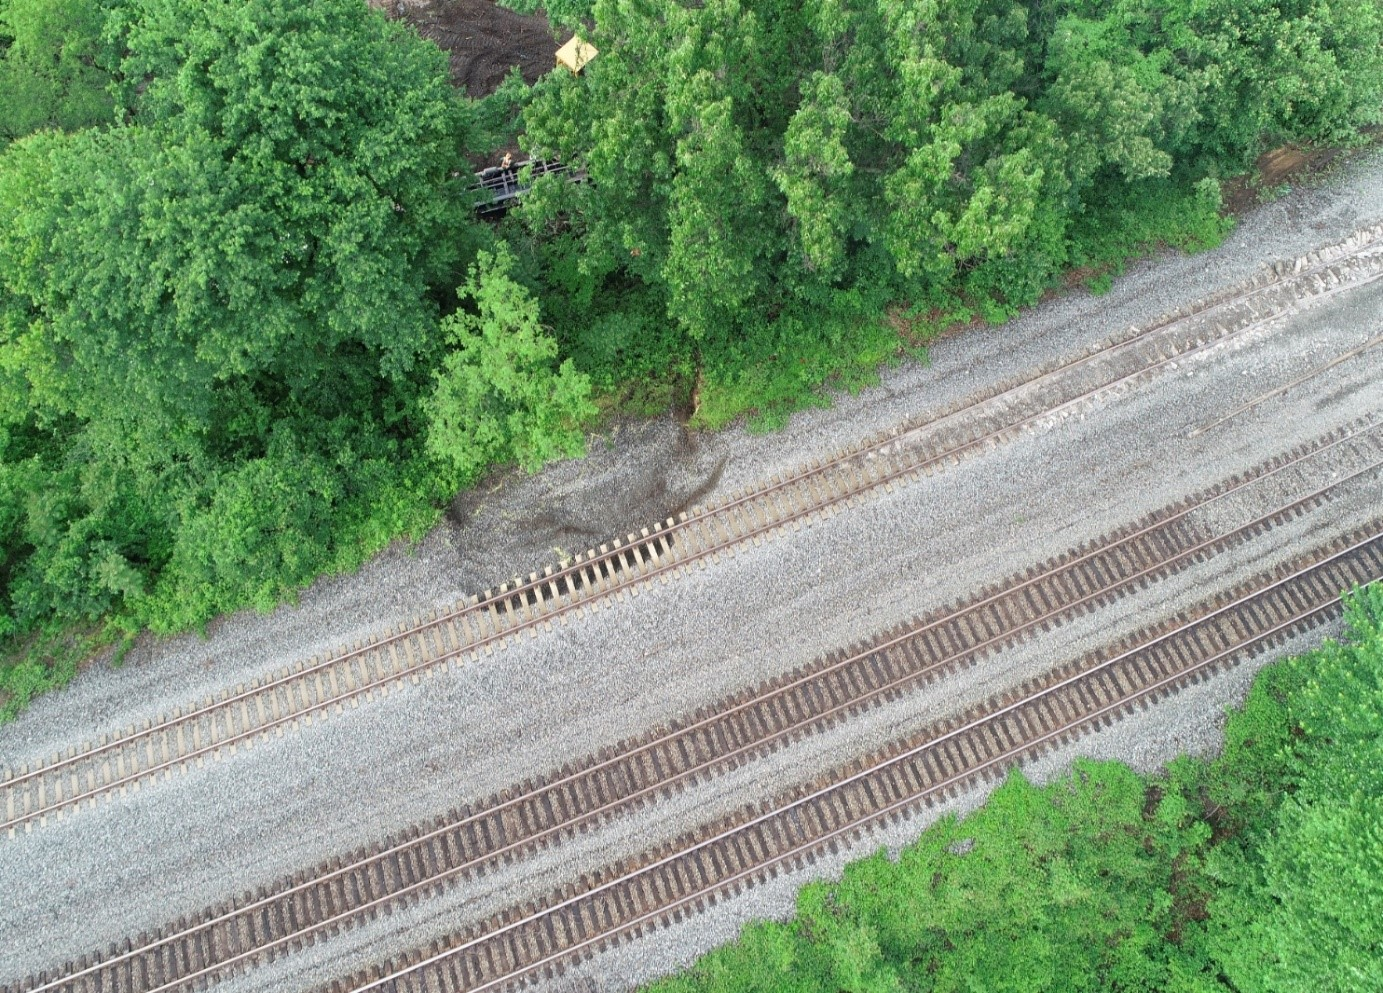 NTSB aerial drone photograph taken after freight cars were removed from main track one.